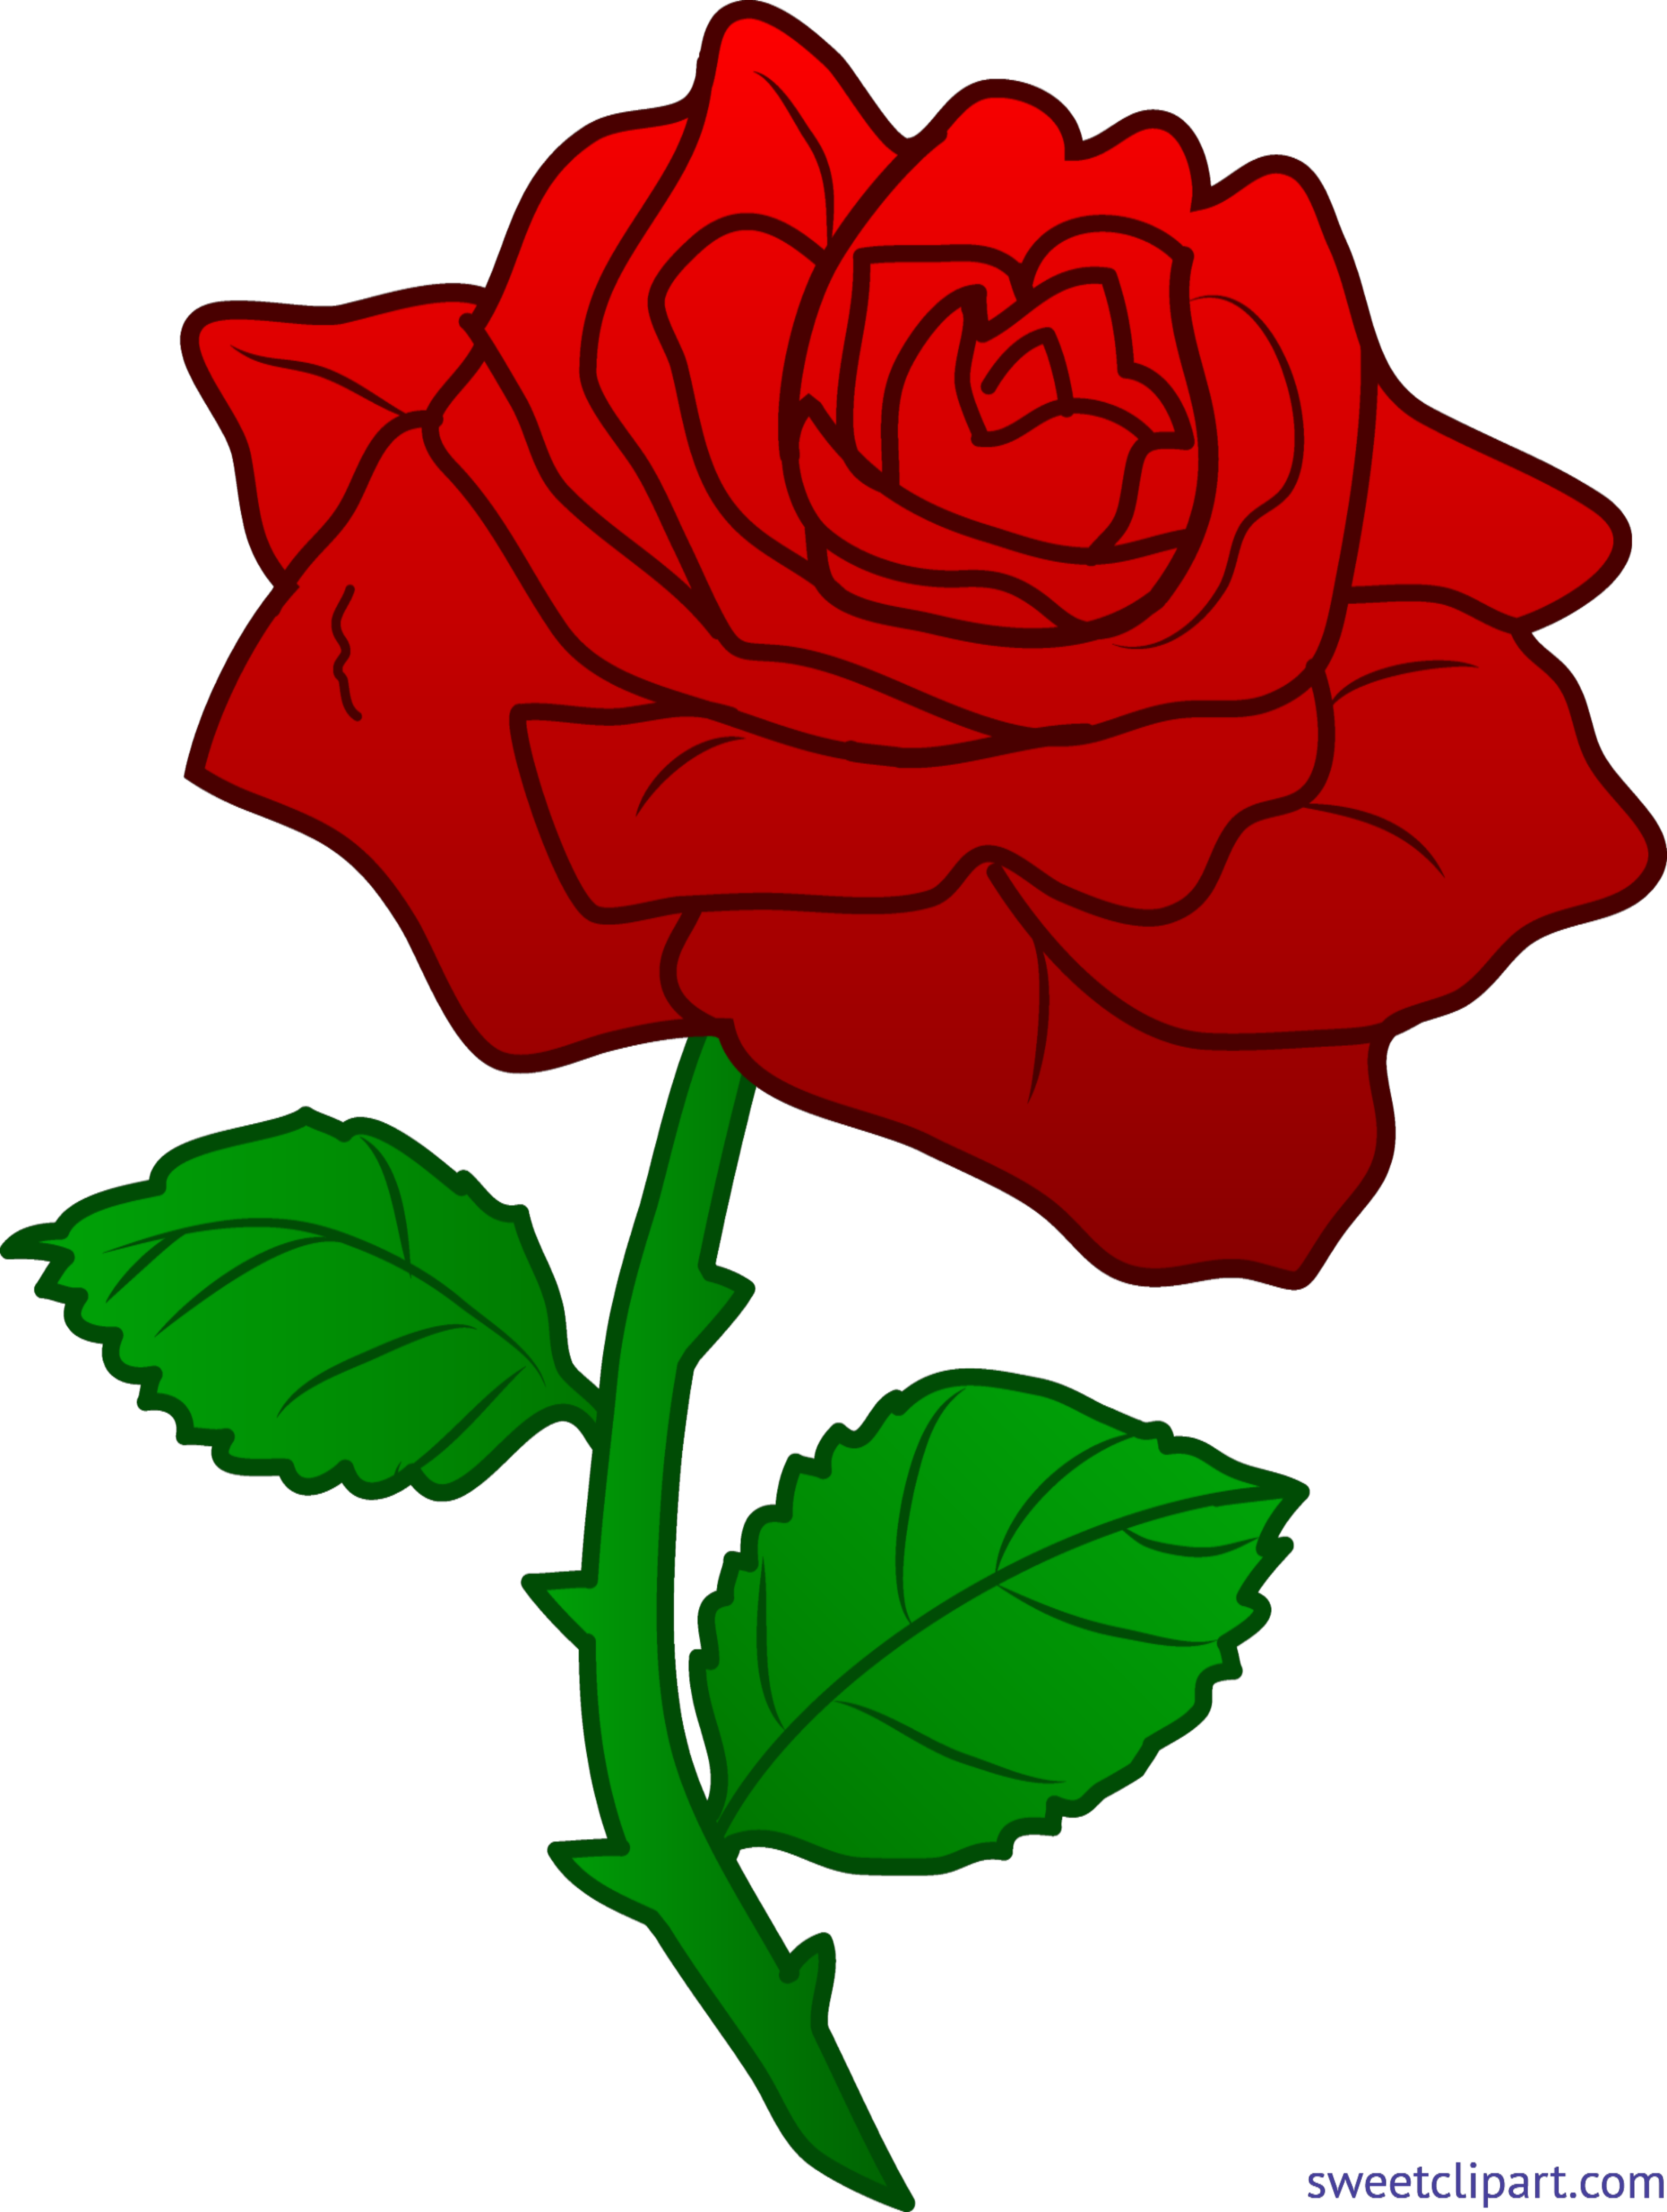 Clipart roses easy. Rose red clip art